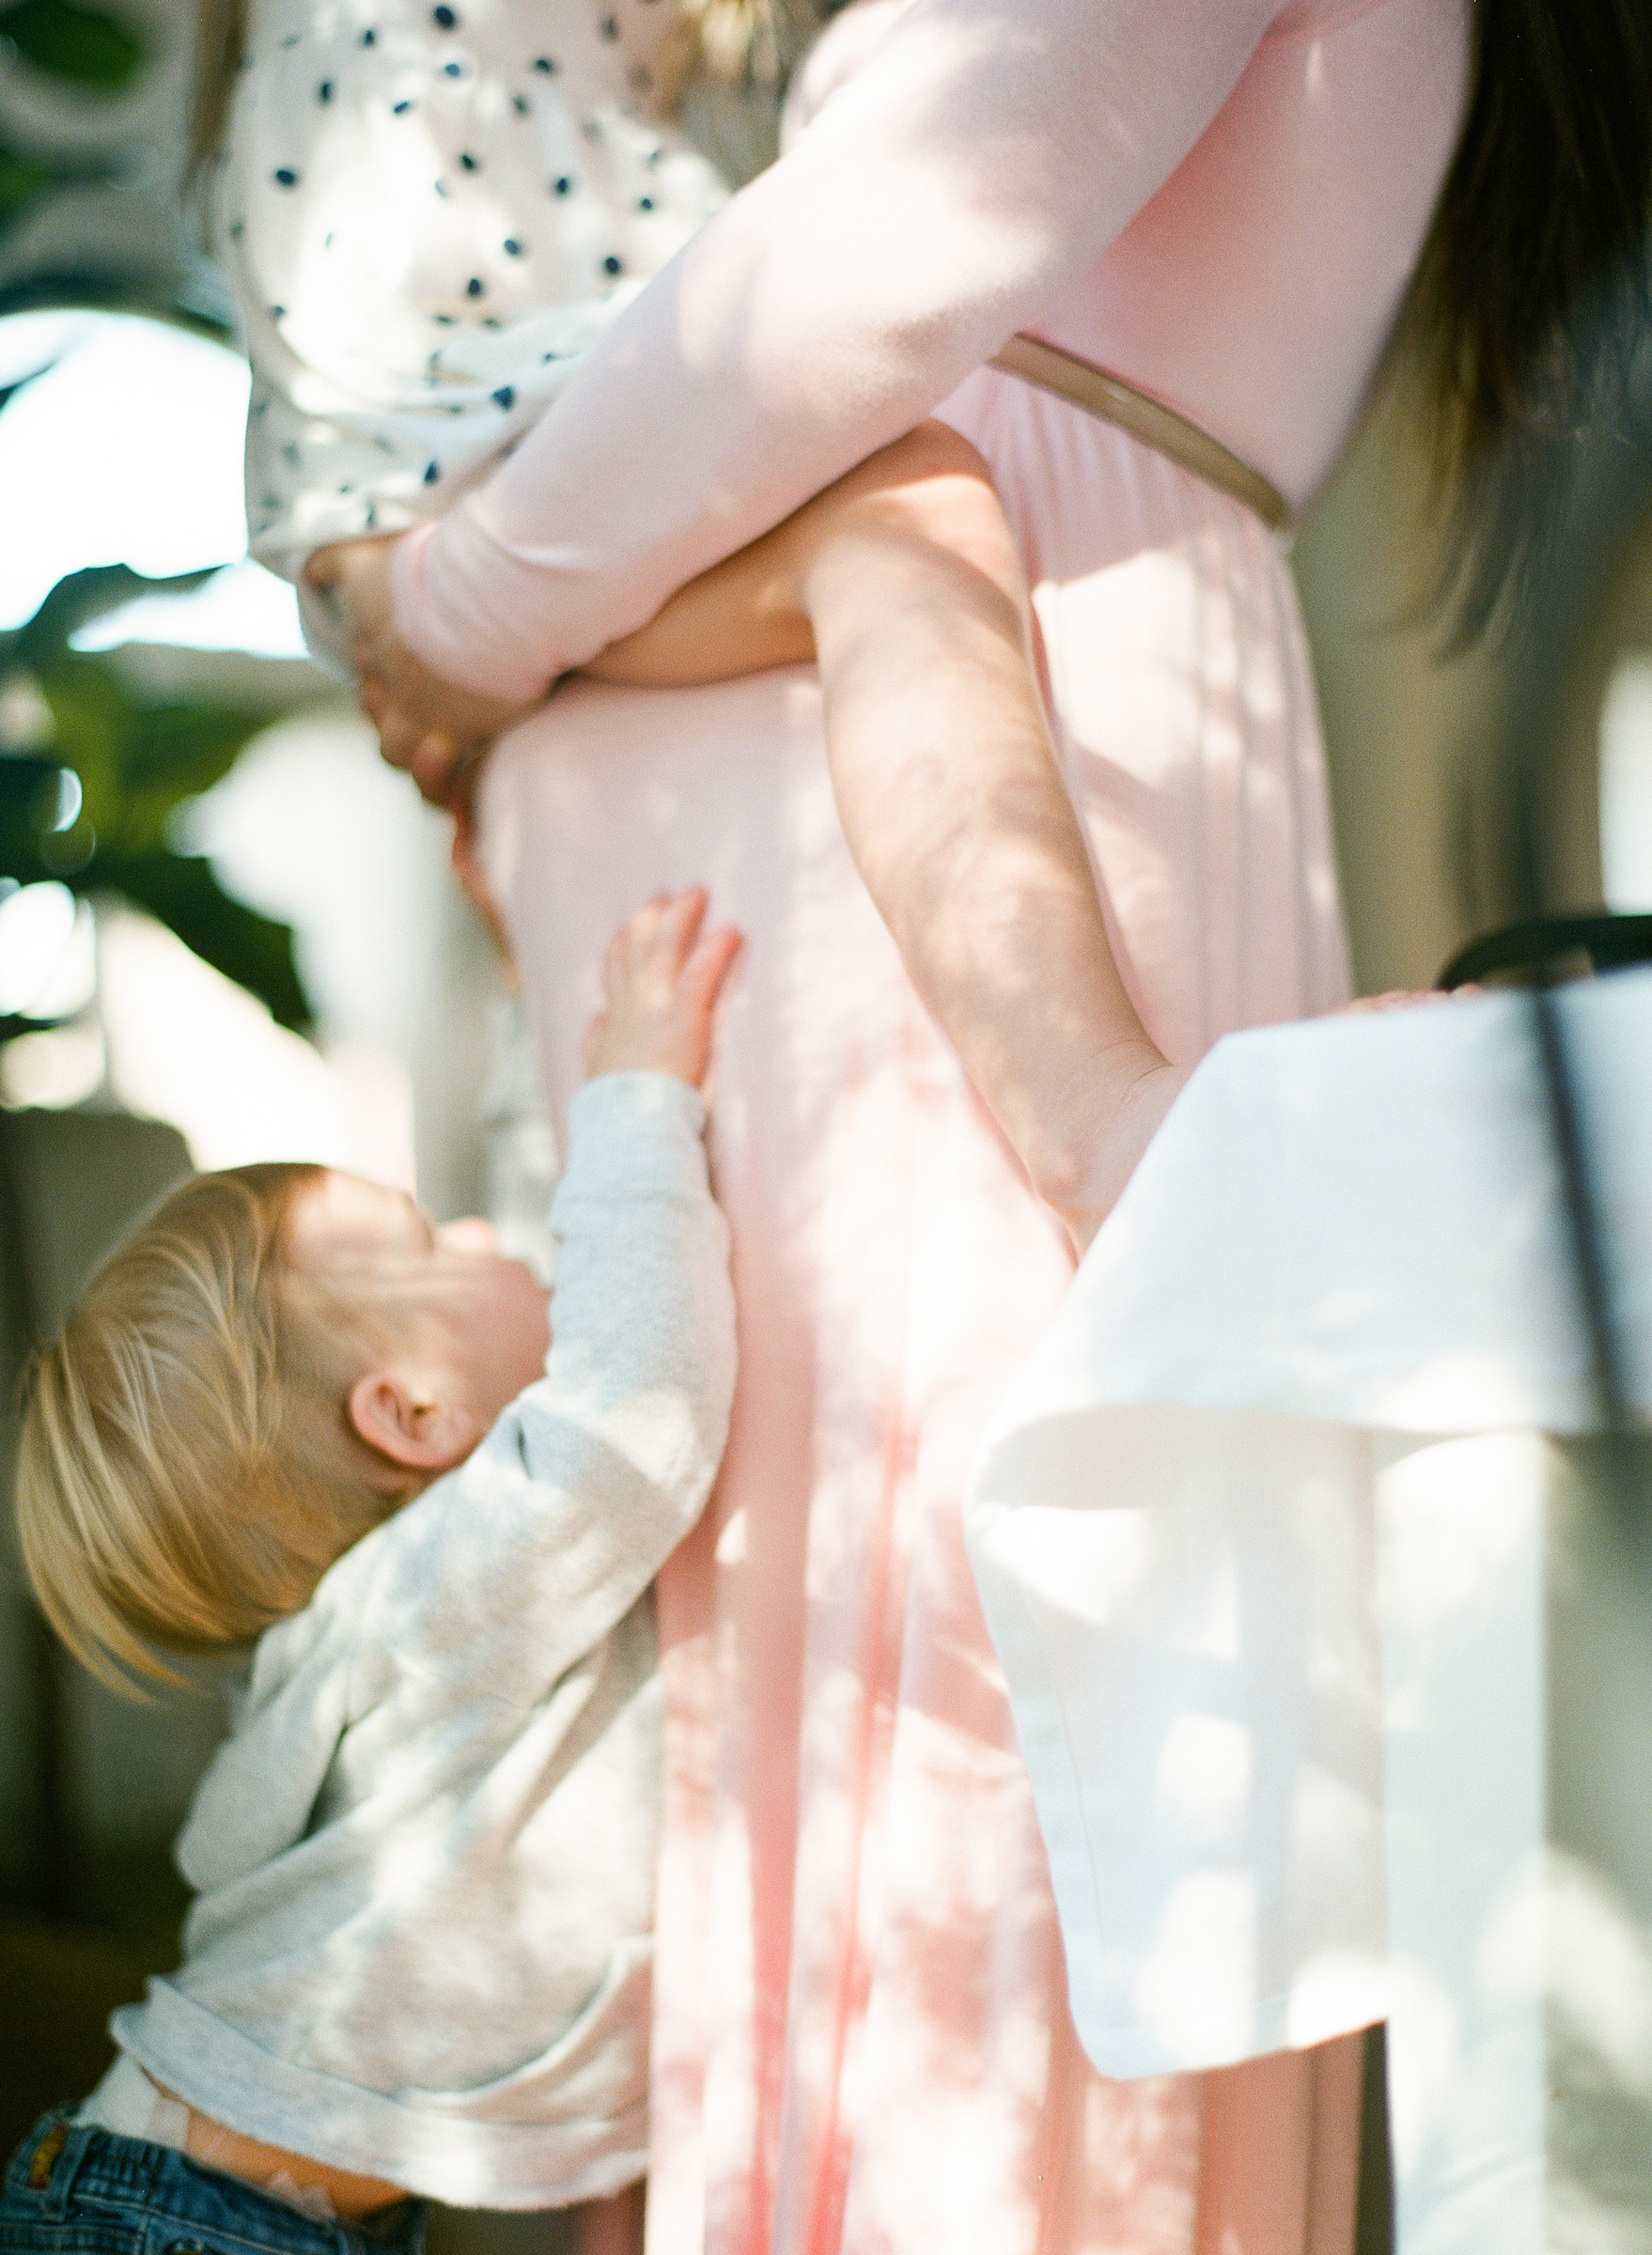 raleigh-family-film-photographer-home-session-maternity-baby-002